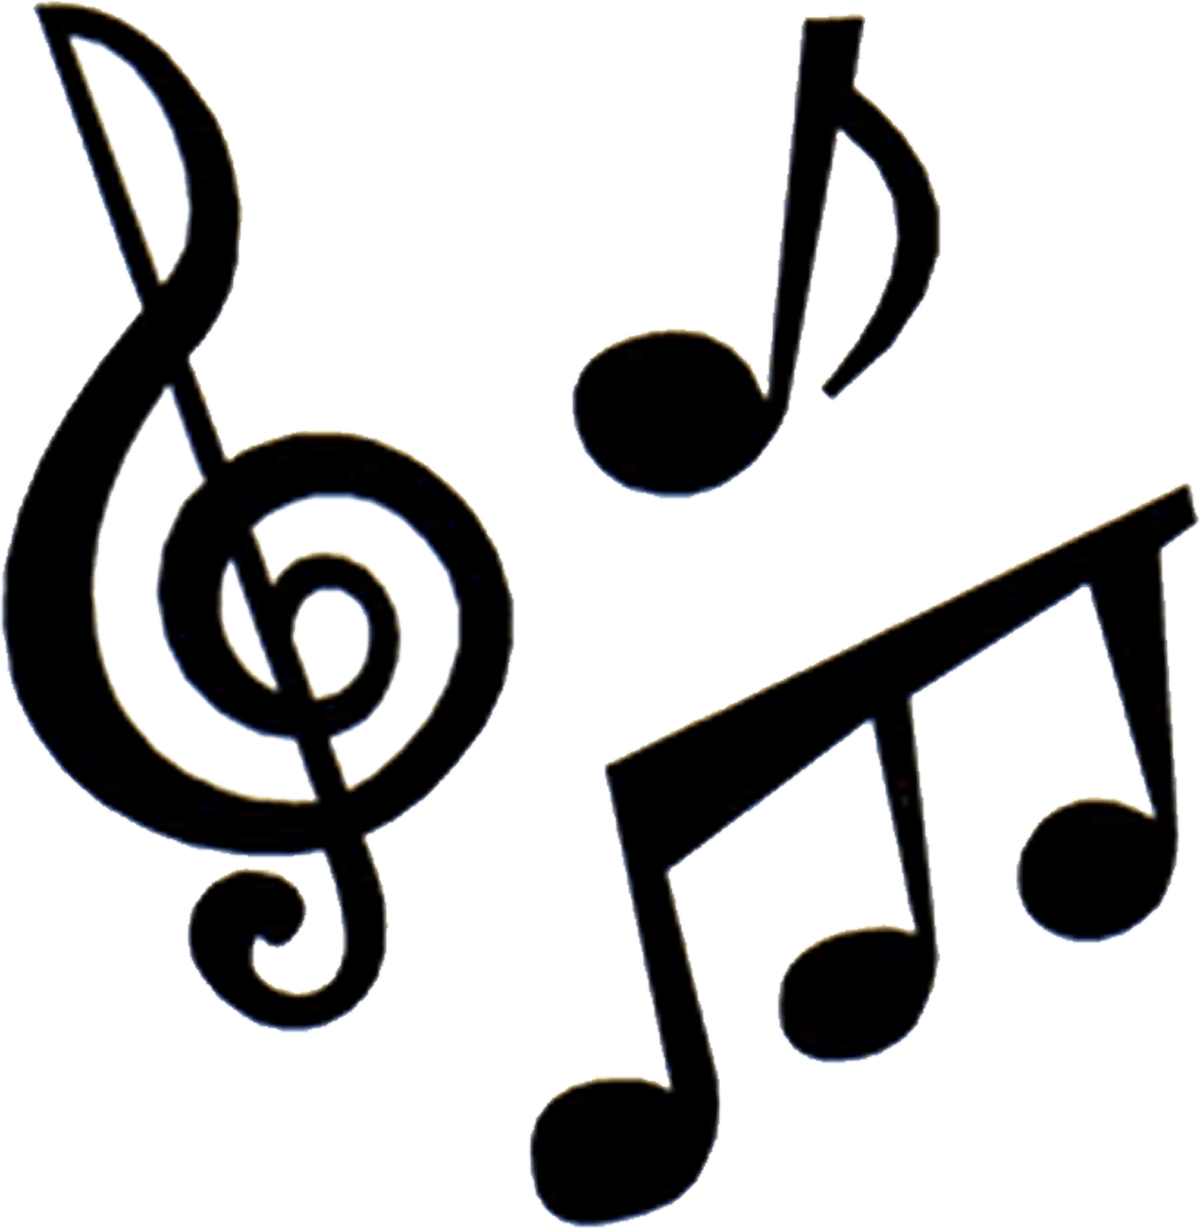 Marching Band Instruments Clipart Free Download Best Marching Band